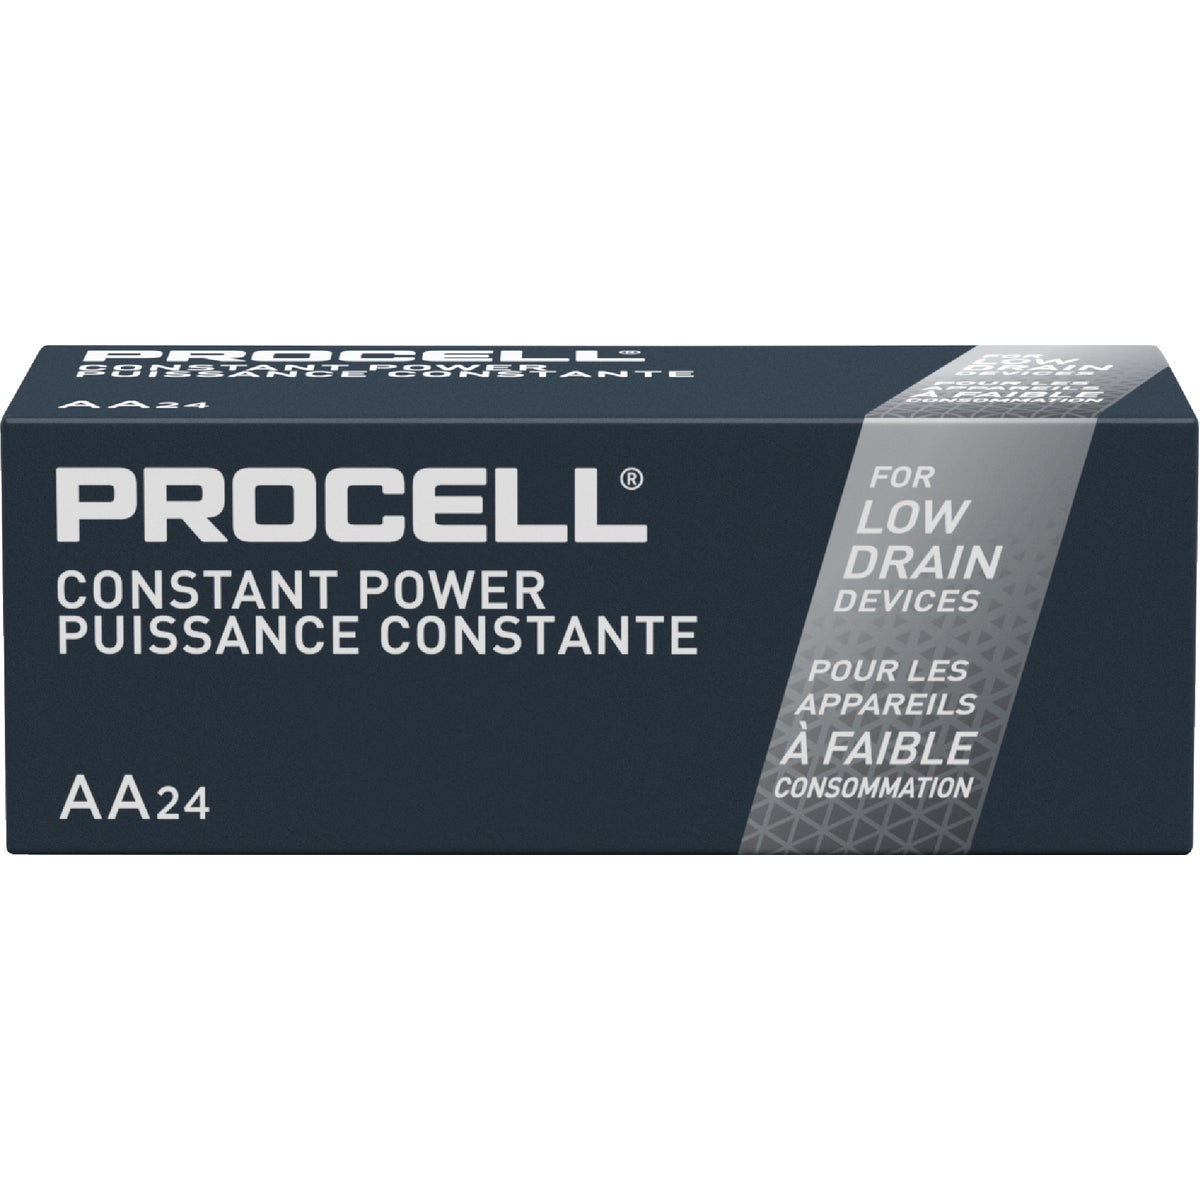 24PK AA PROCELL BATTERY - 85595 by P & G  Duracell